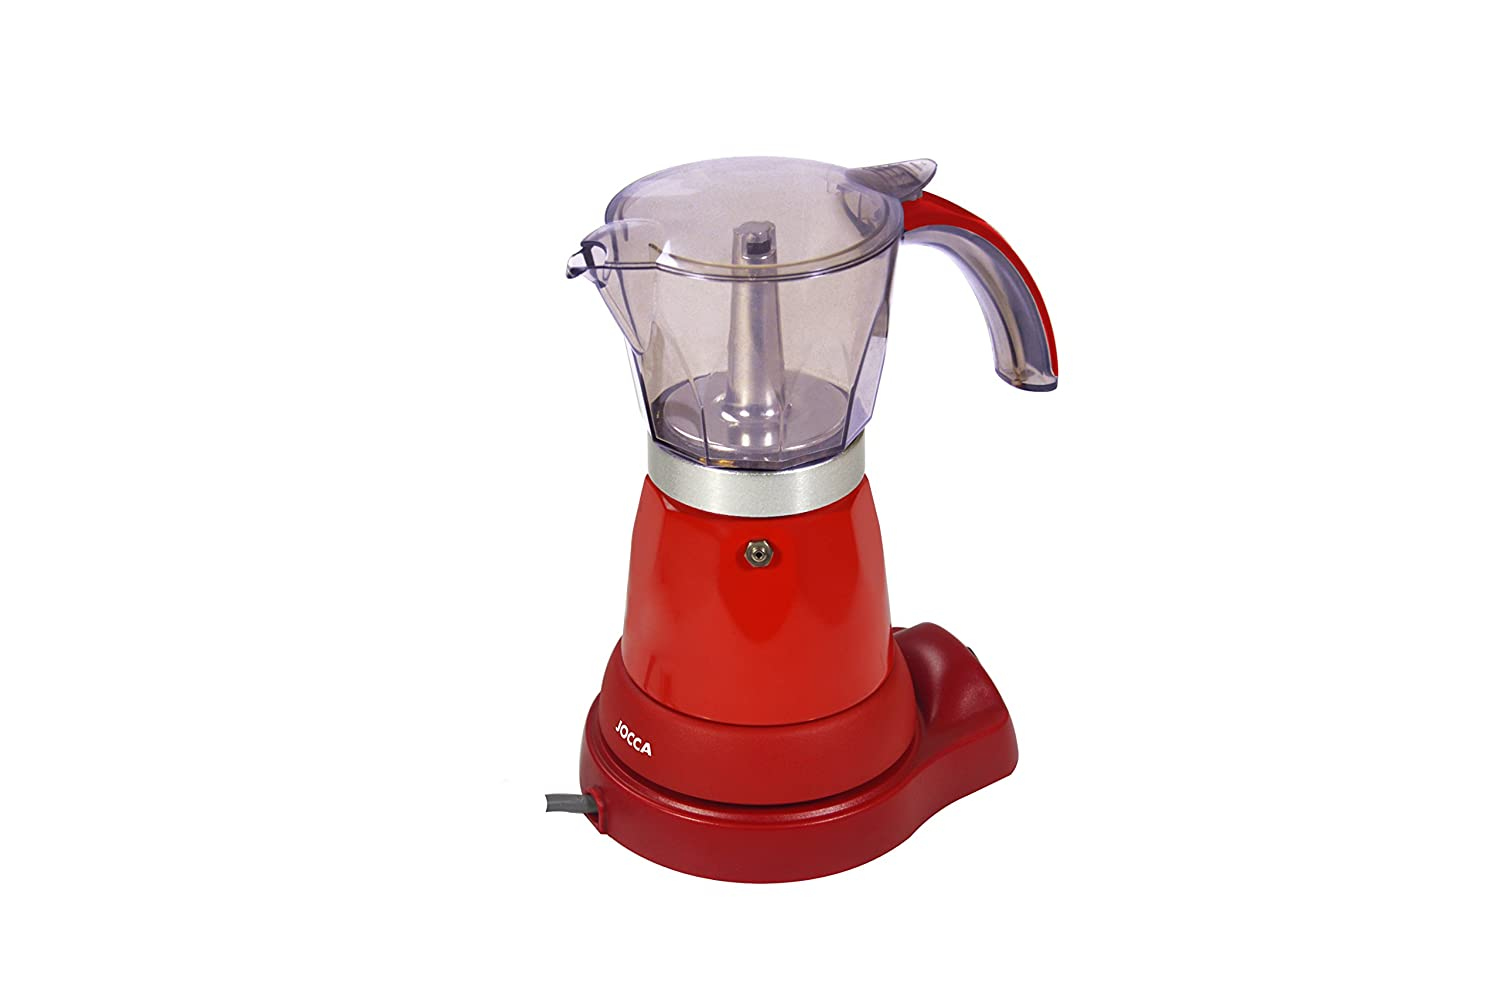 Jocca Italian Electric Coffee Maker, 480 W [Energy Class A++]